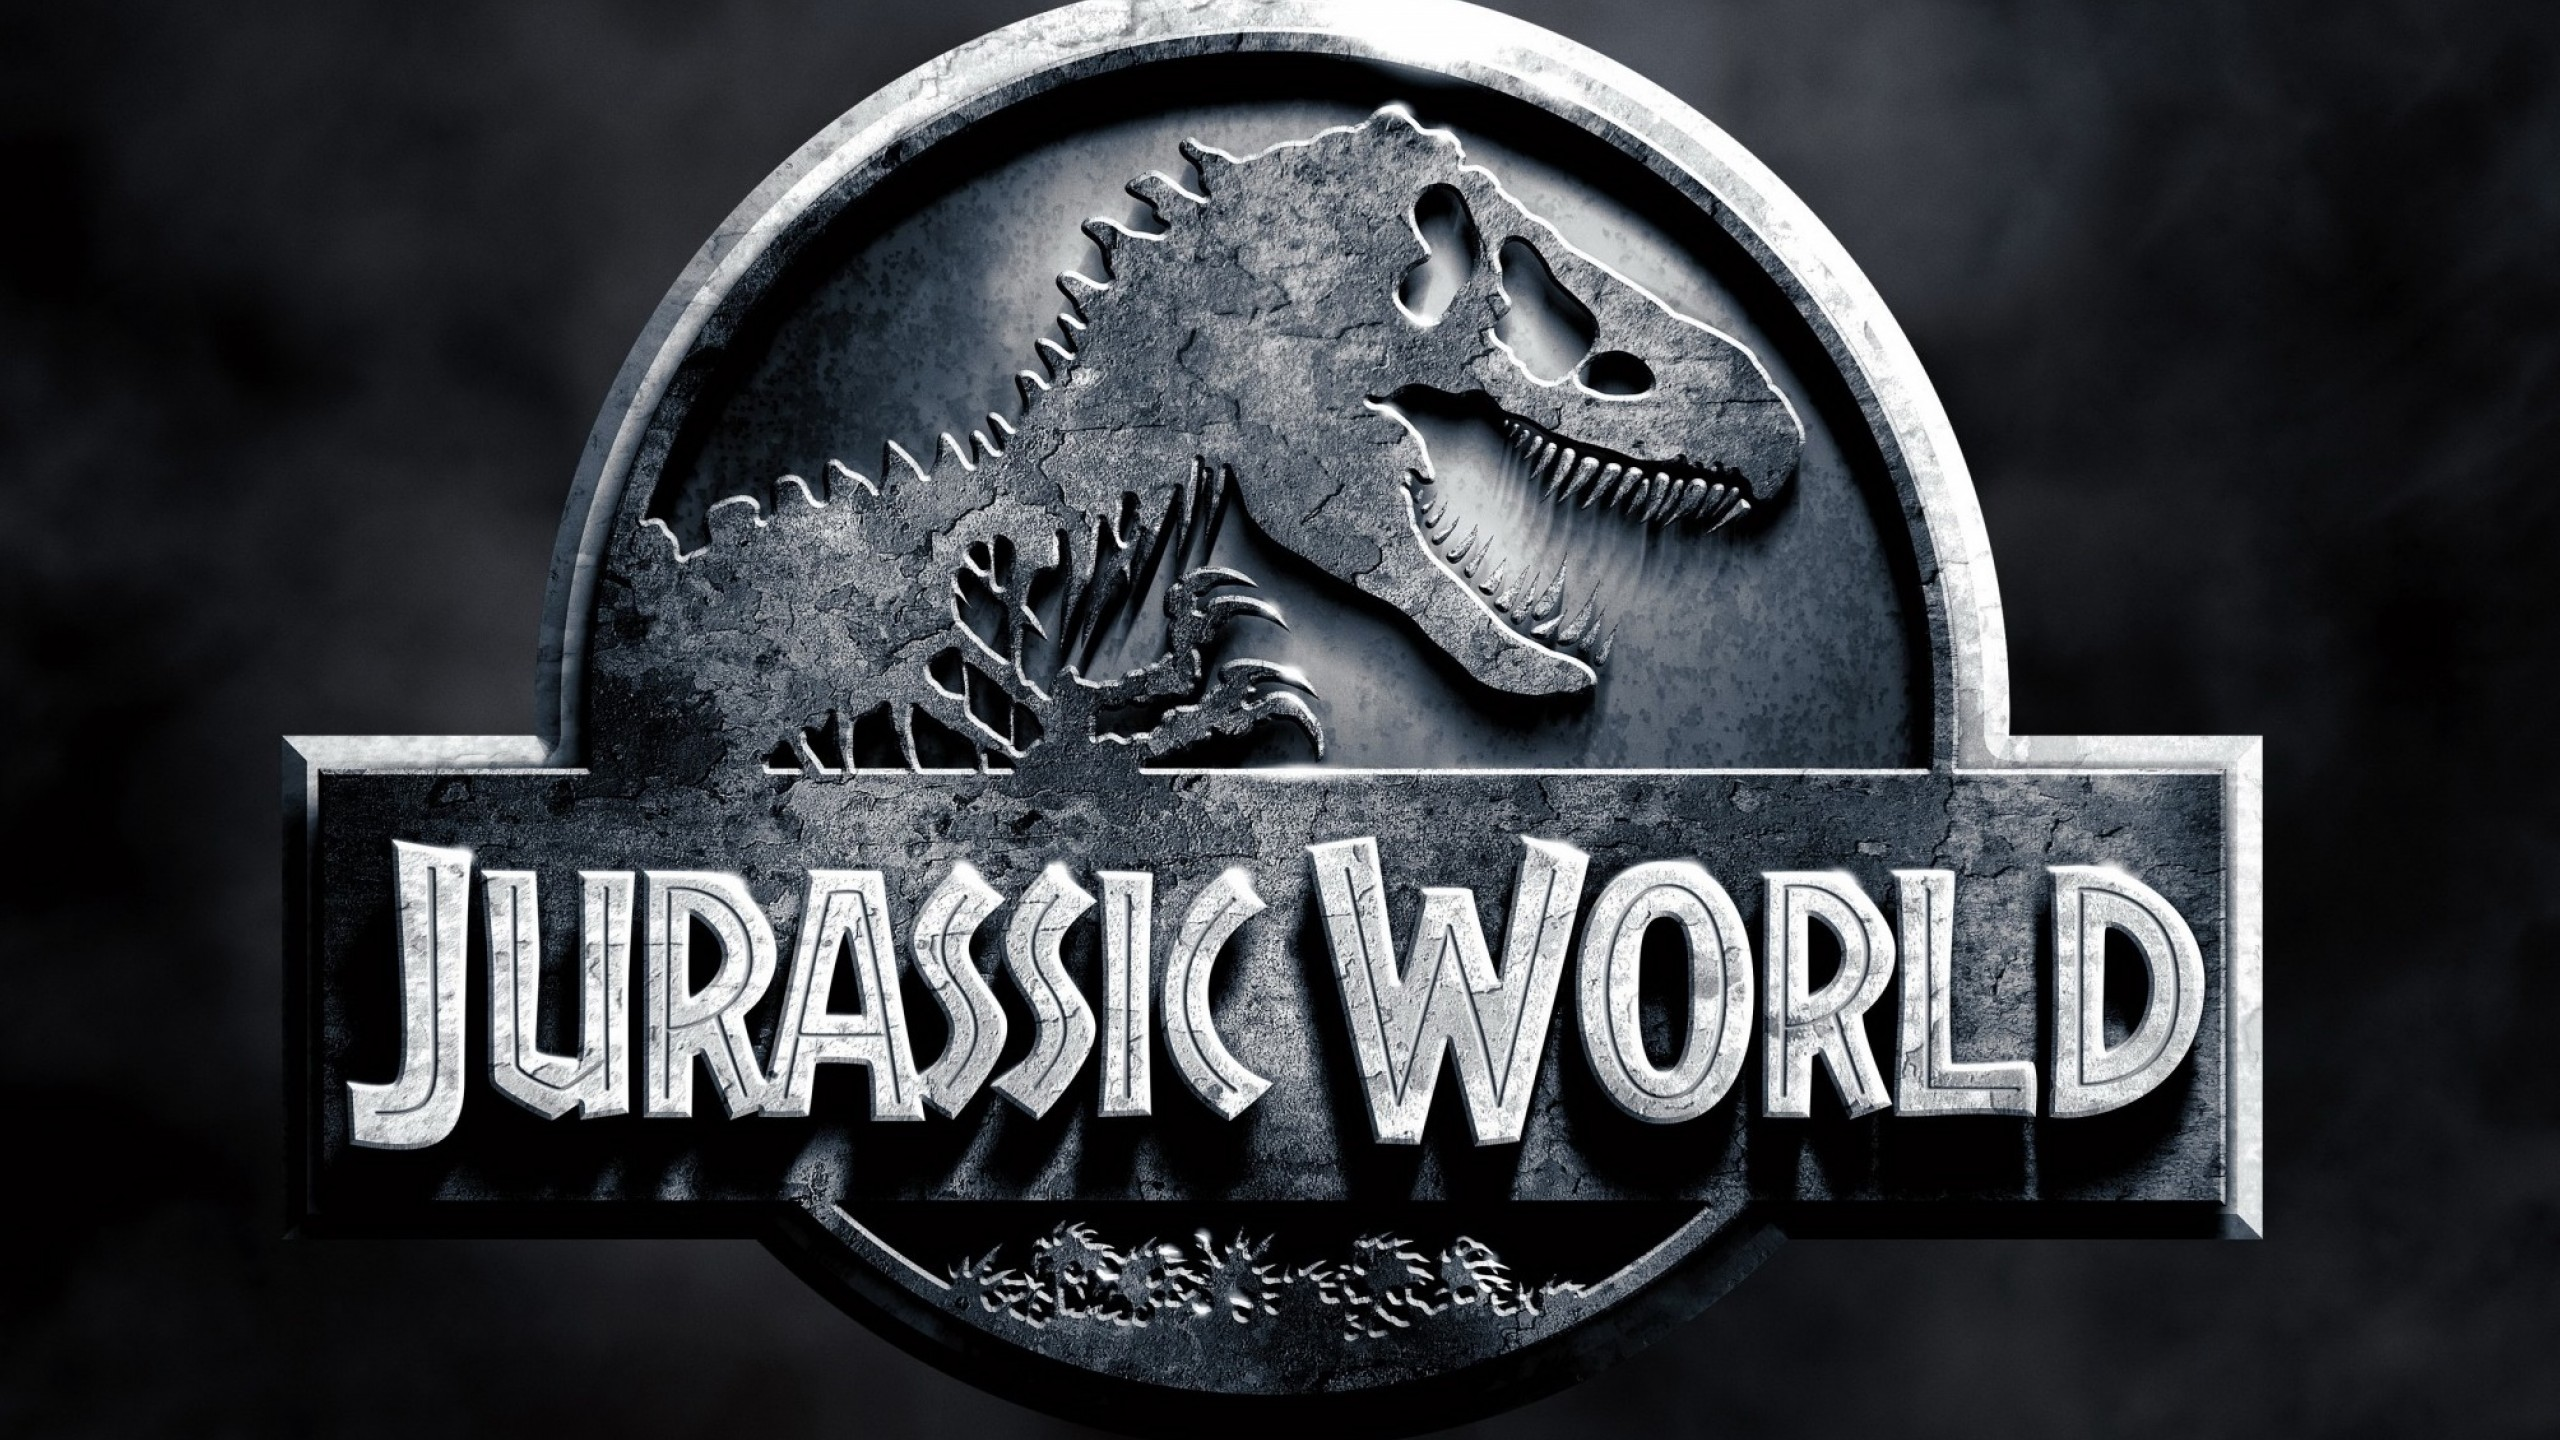 Jurassic World poster from SciFiEmpire.net